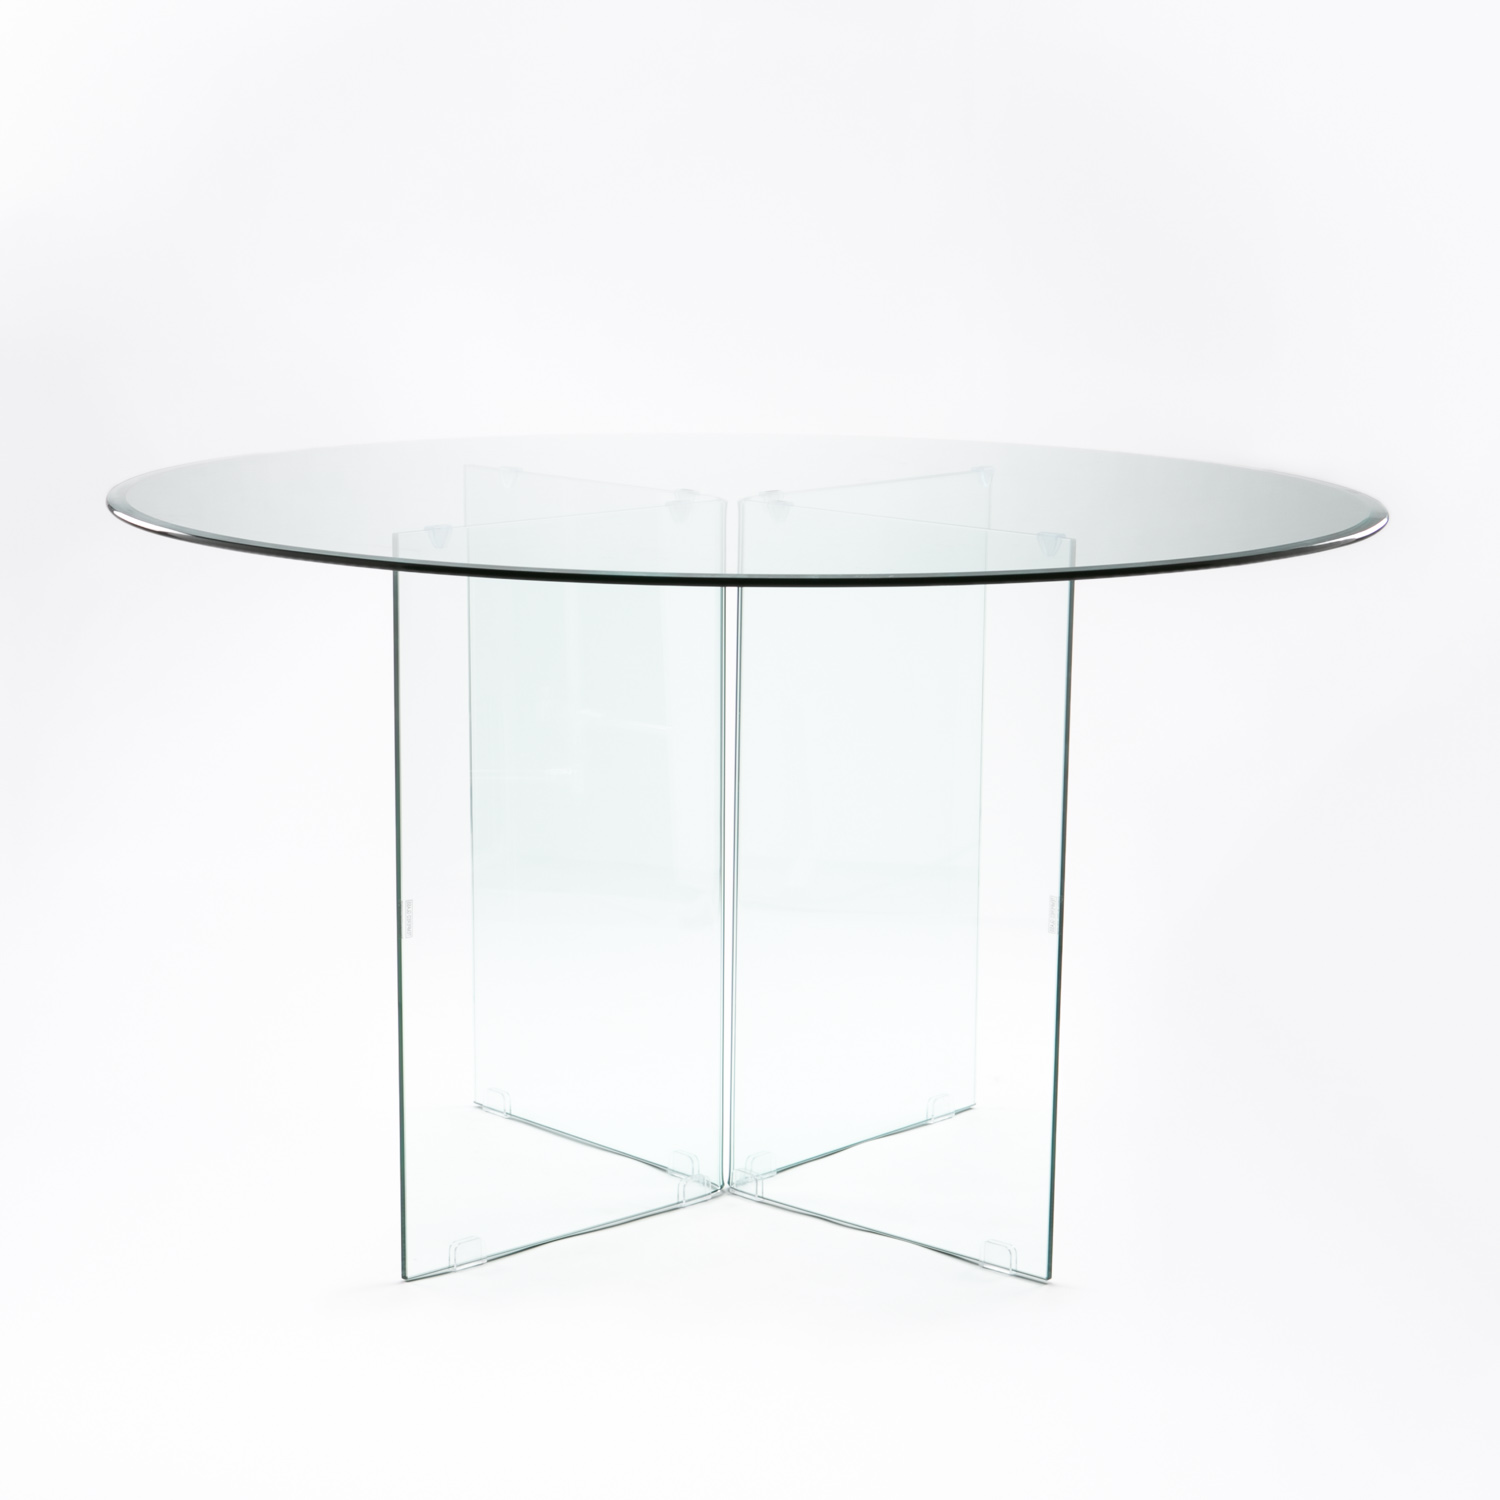 RUBY 137cm ROUND TEMPERED GLASS DINING TABLE